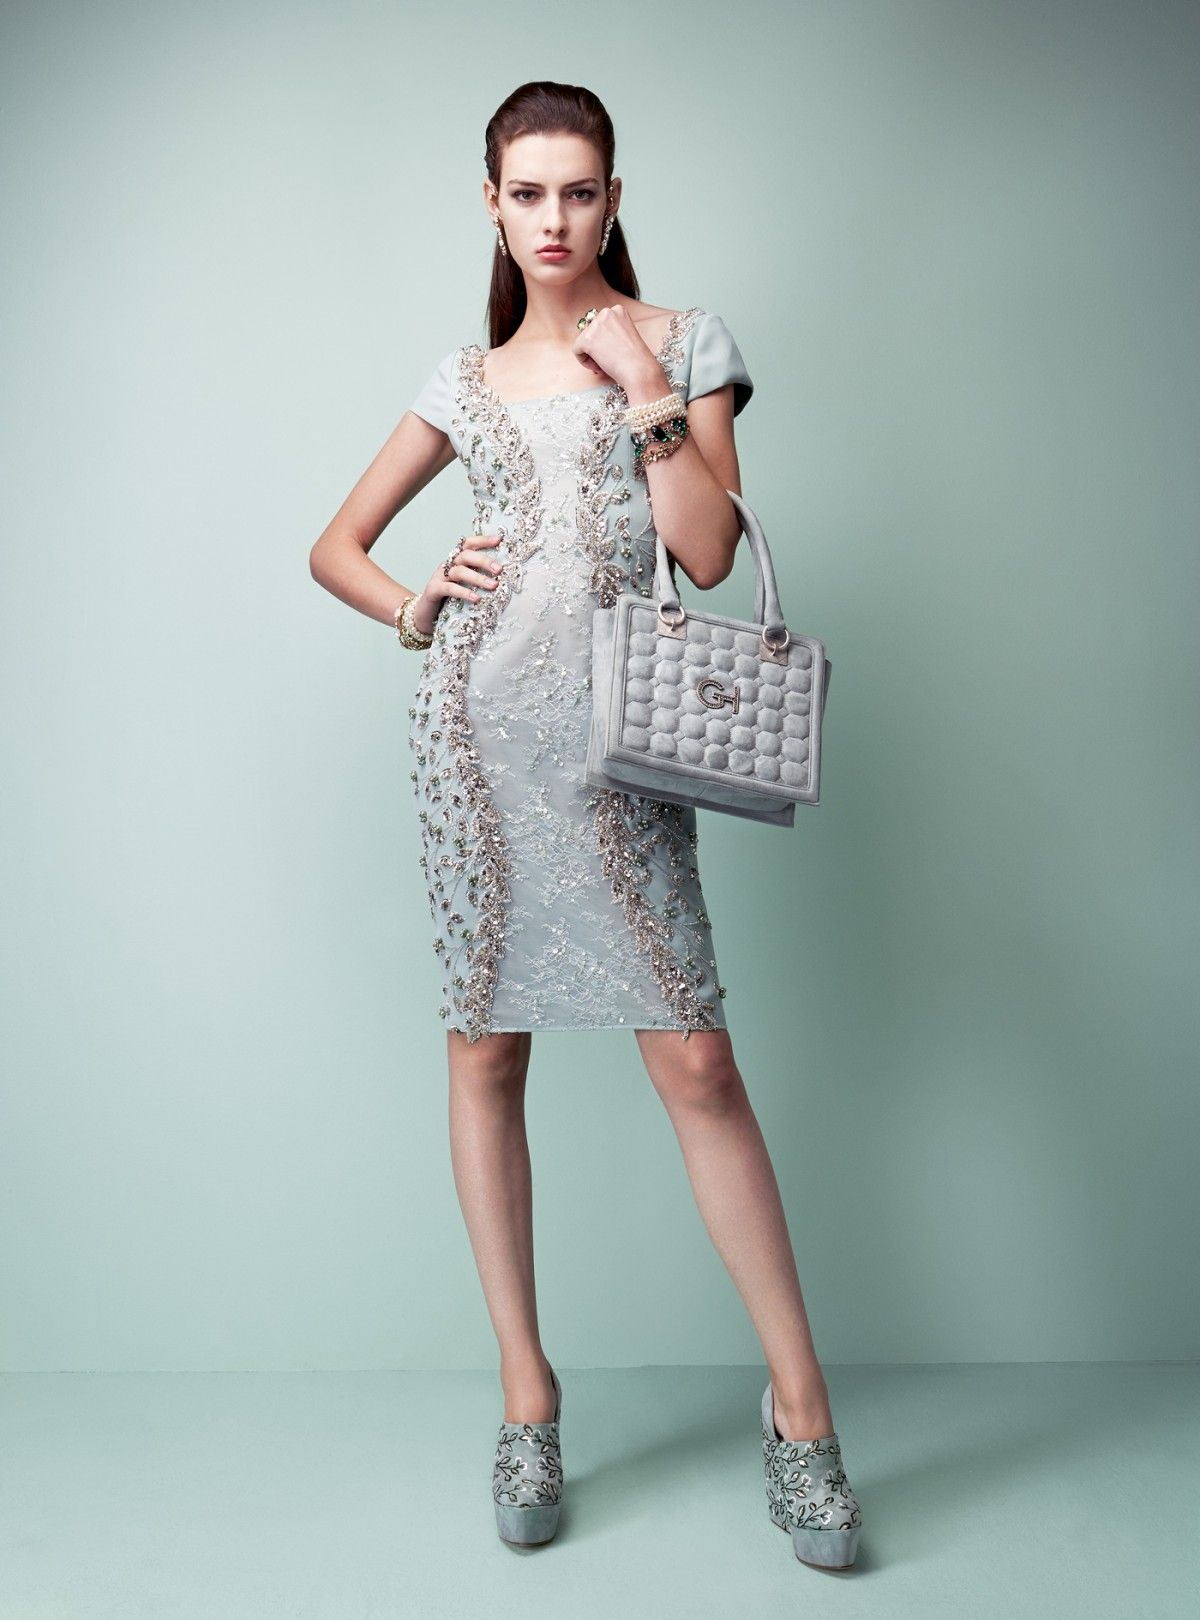 Georges hobeika springsummer readytowear collection